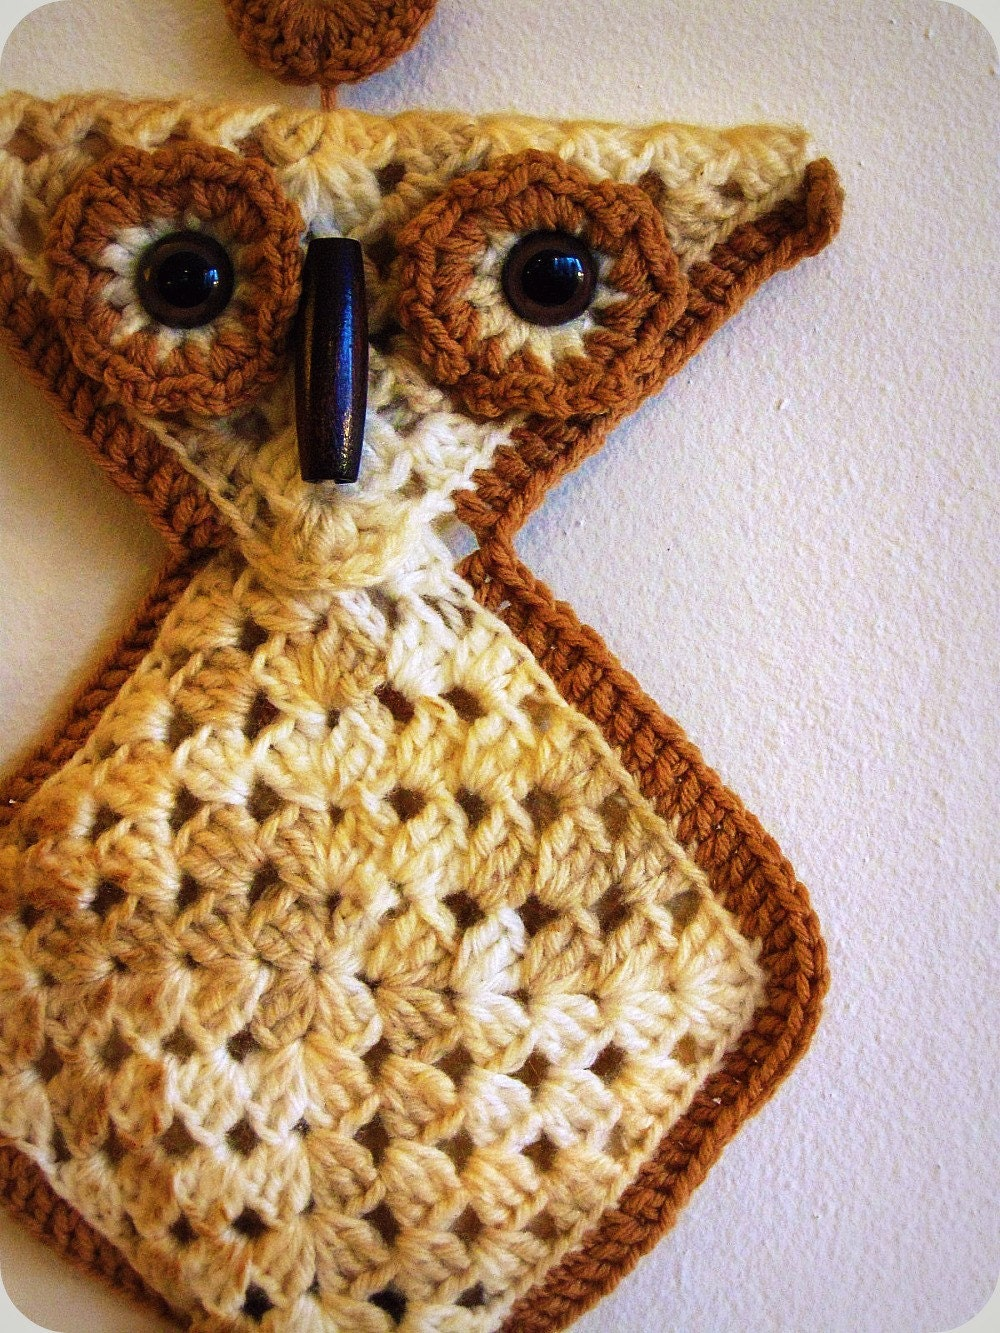 Vintage 70s Crochet Owl Towel Holder With Ring